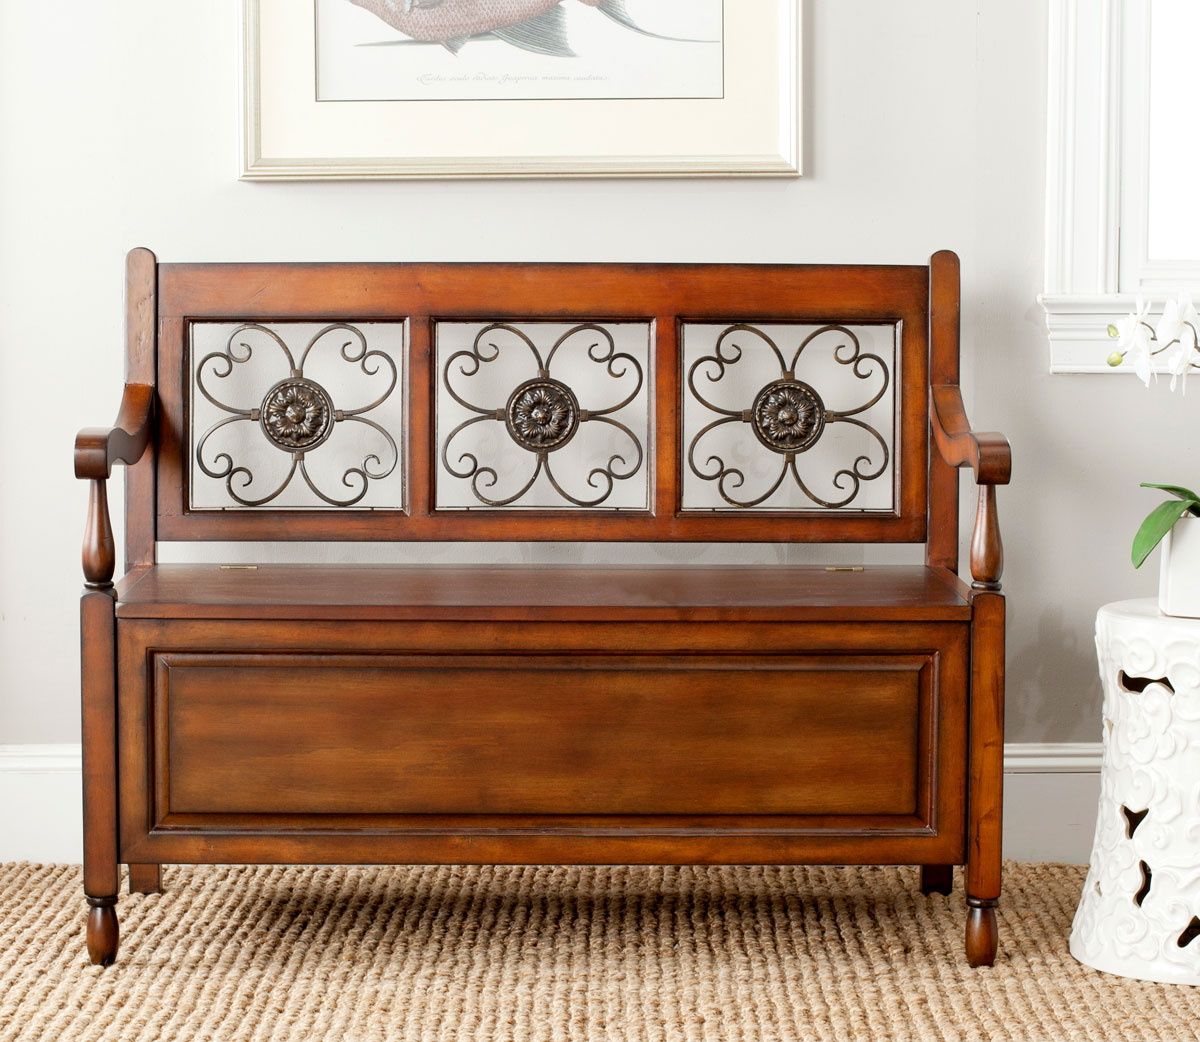 ERICA STORAGE BENCH AMH4120A BENCHES & AMH4120A Benches - Furniture by Safavieh